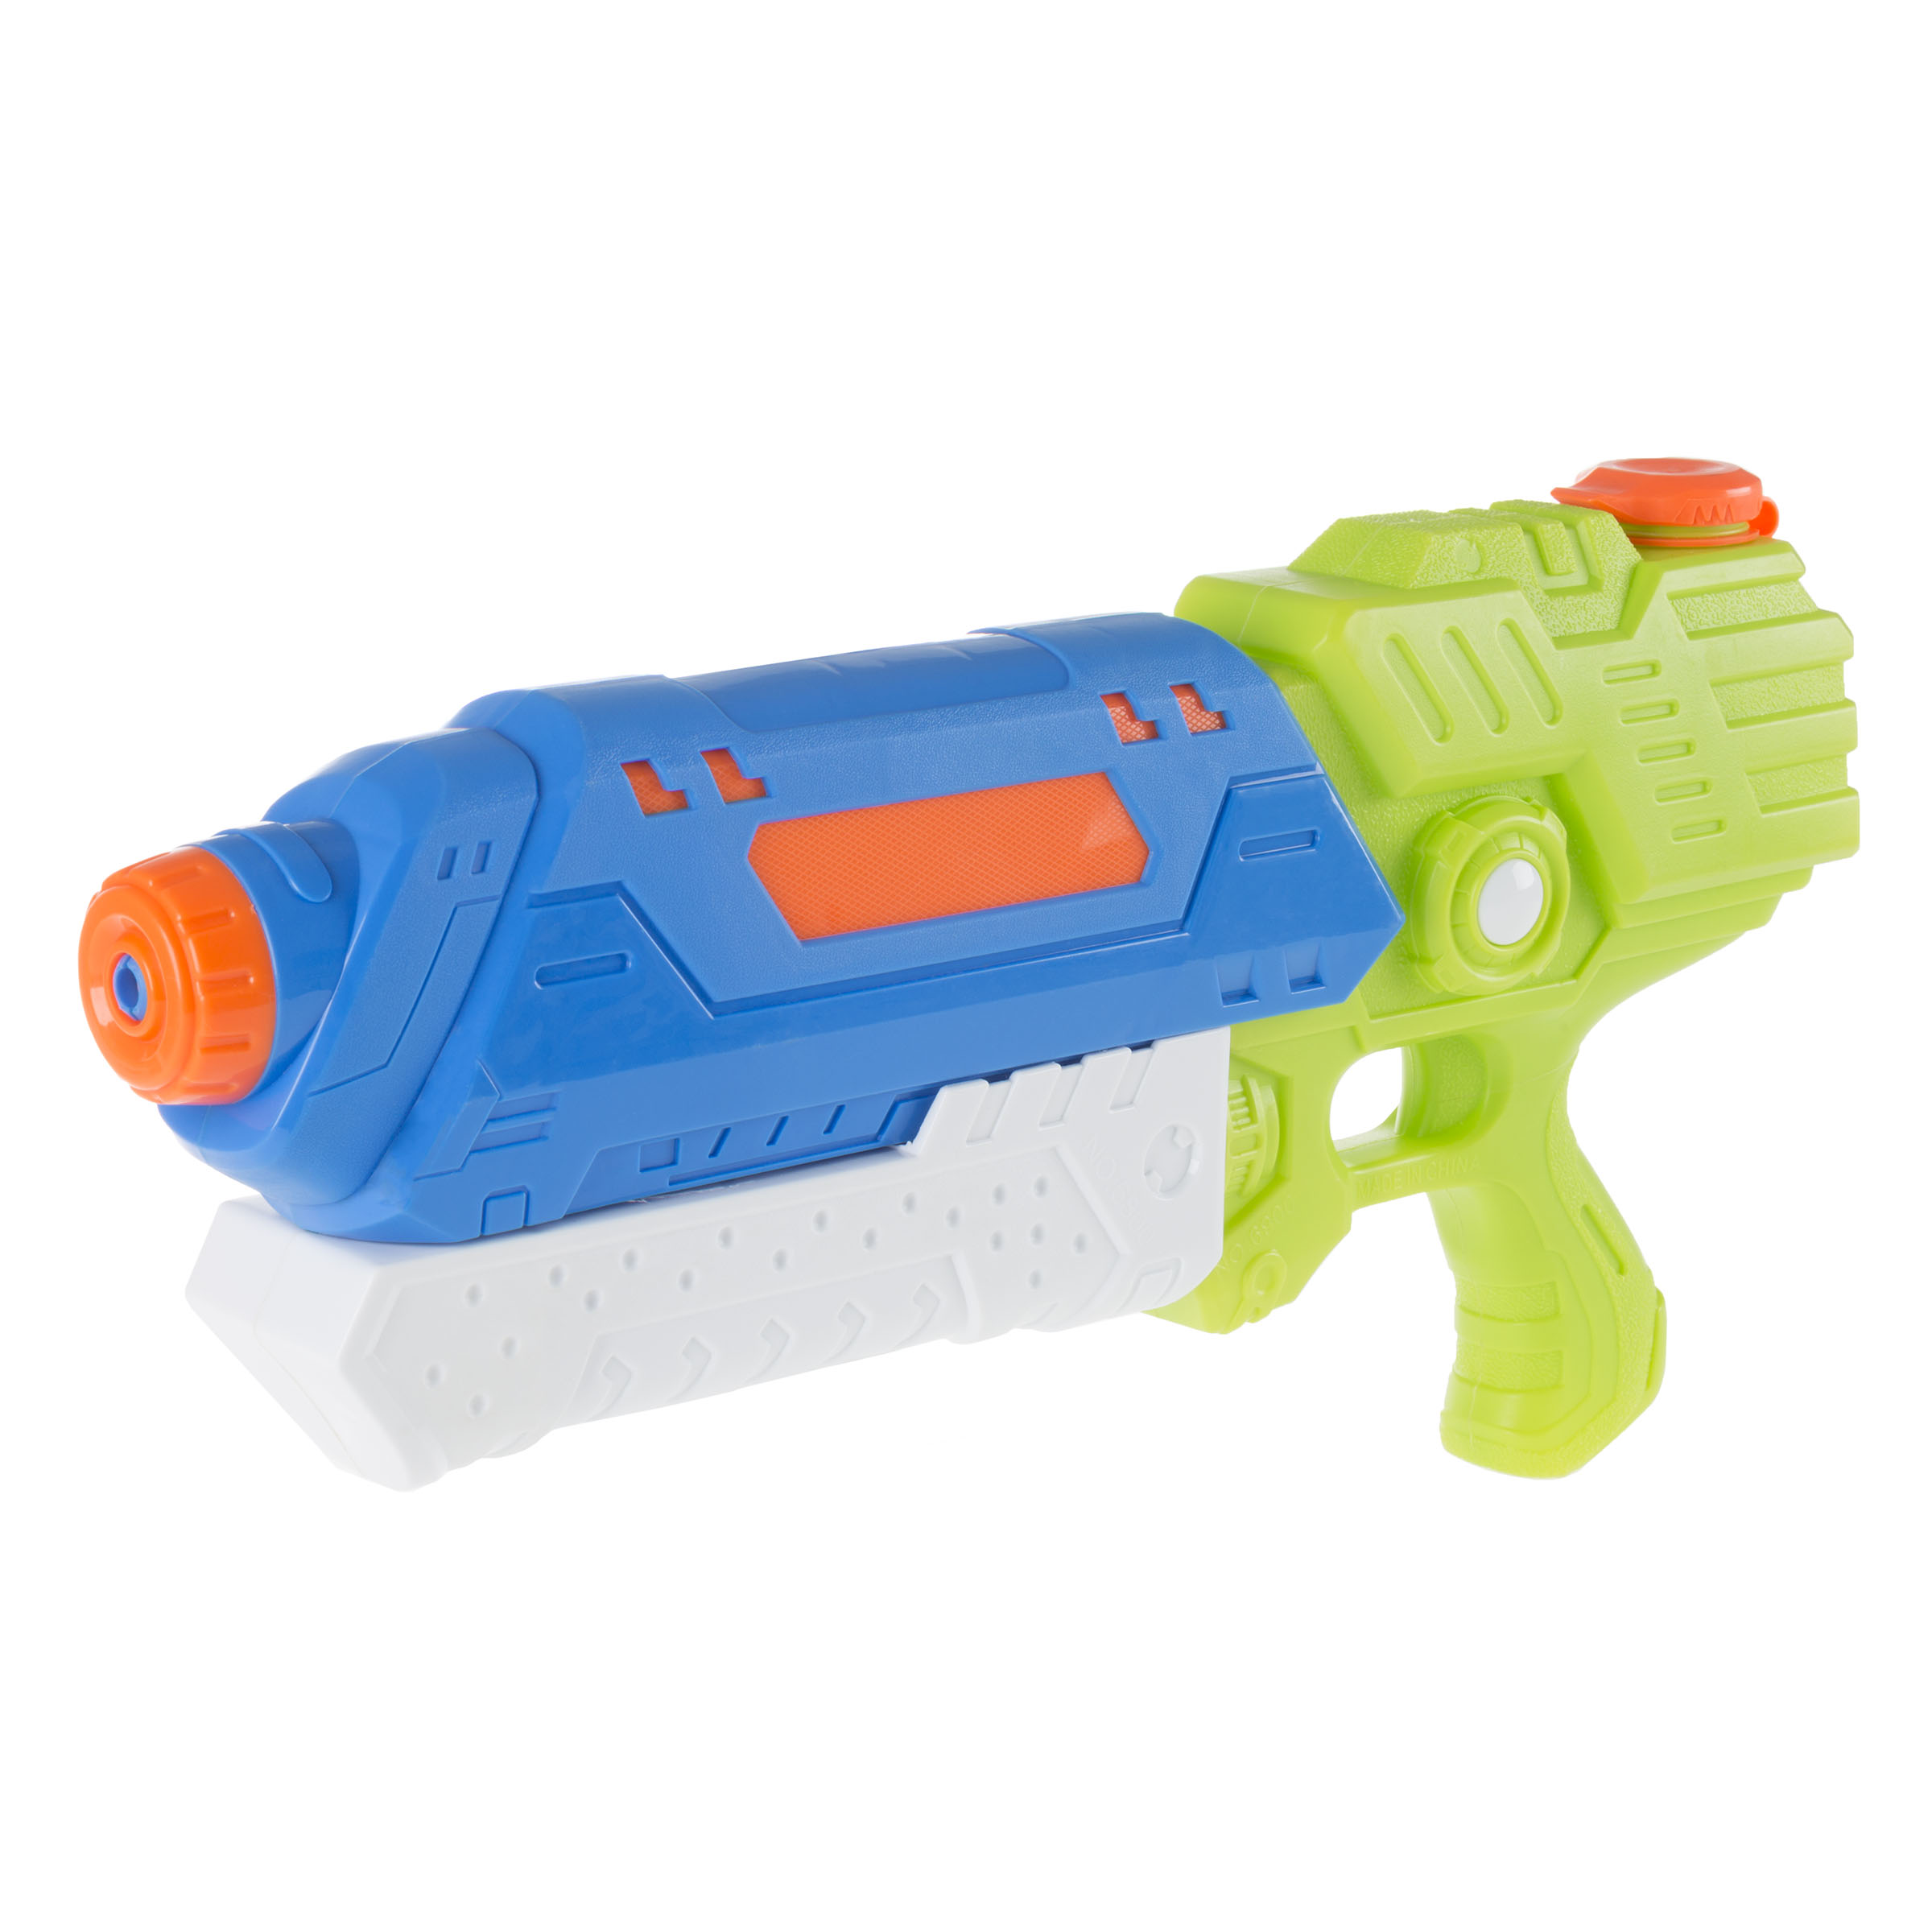 Water Gun Soaker with Air Pressure Pump- Lightweight Squirt Gun Toy for Beach, Pool and Outdoor Games for Kids and Adults by Hey! Play! (Blue/White)